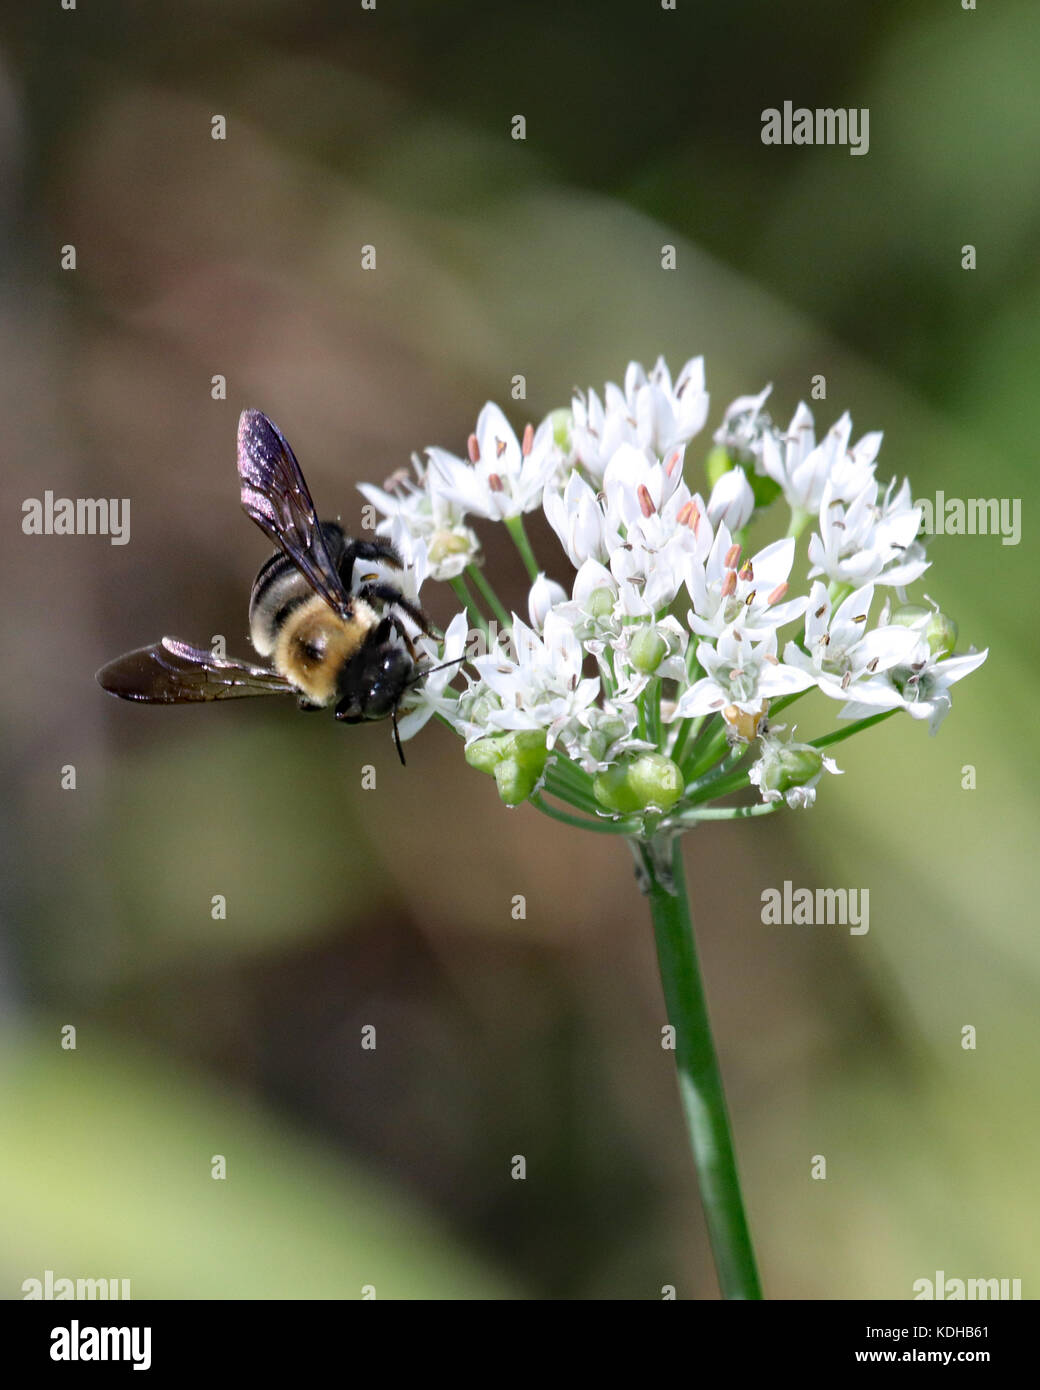 Bumble Bees Love The Pretty White Flower Clusters That Grow On The